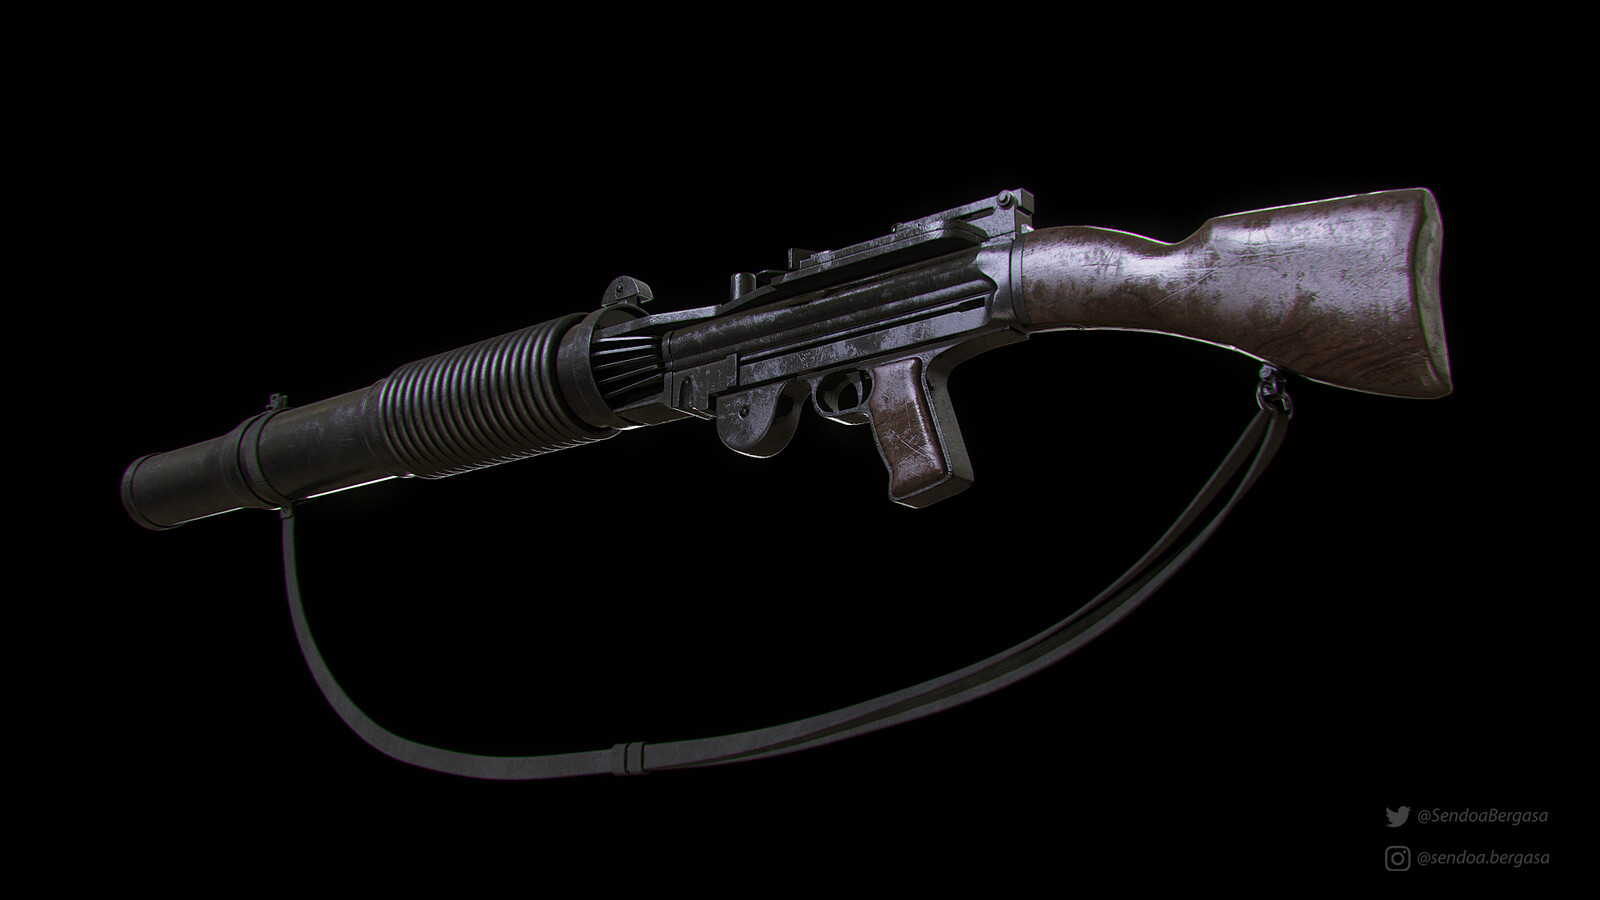 T-21 Light Repeating Blaster